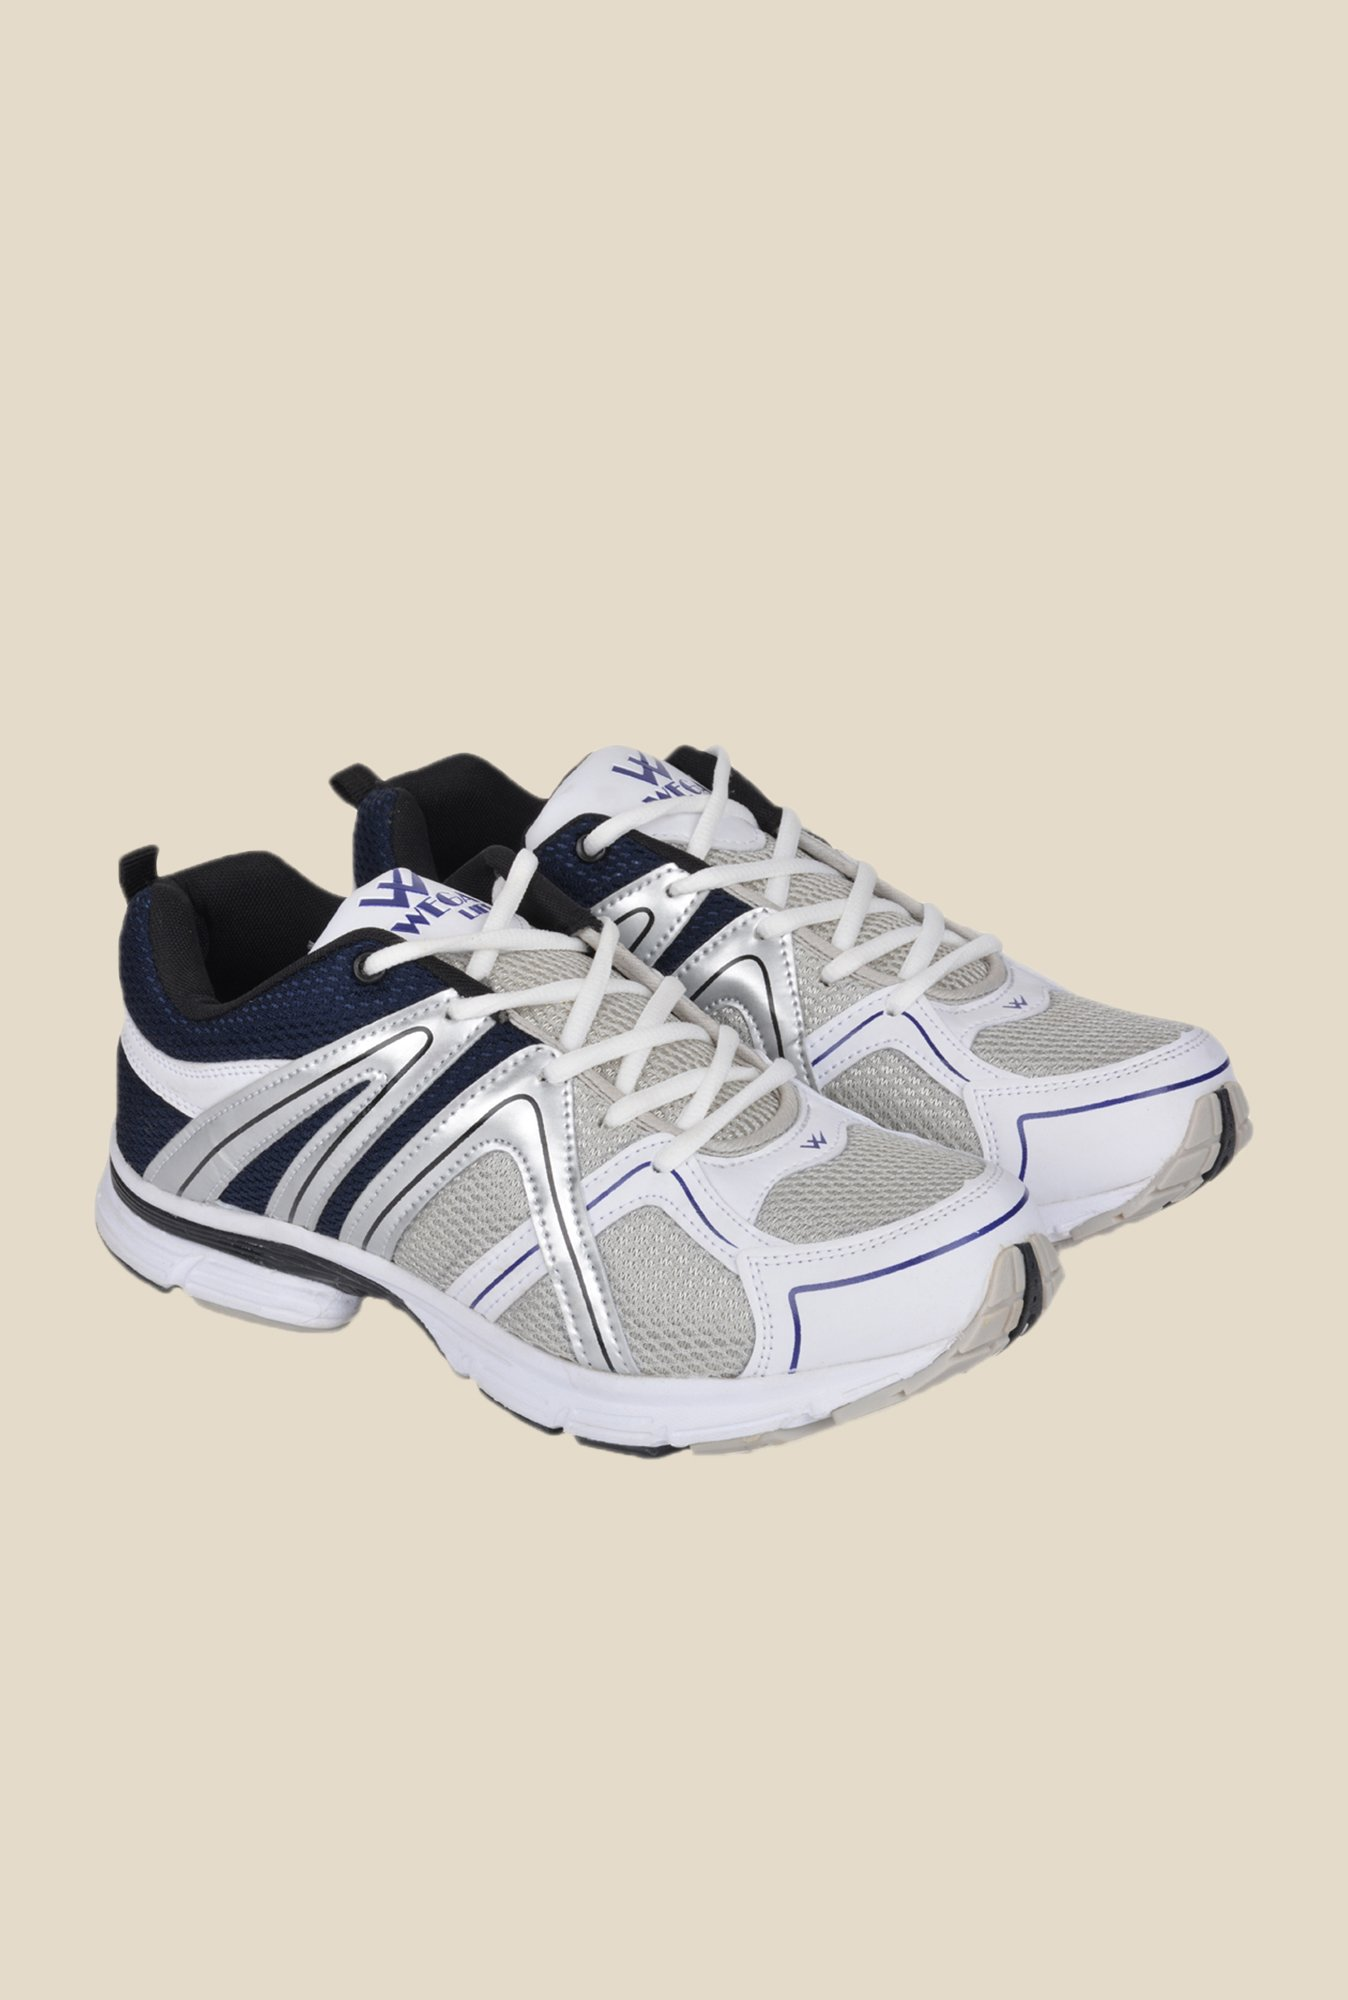 Wega Life Xplore Grey & Navy Running Shoes